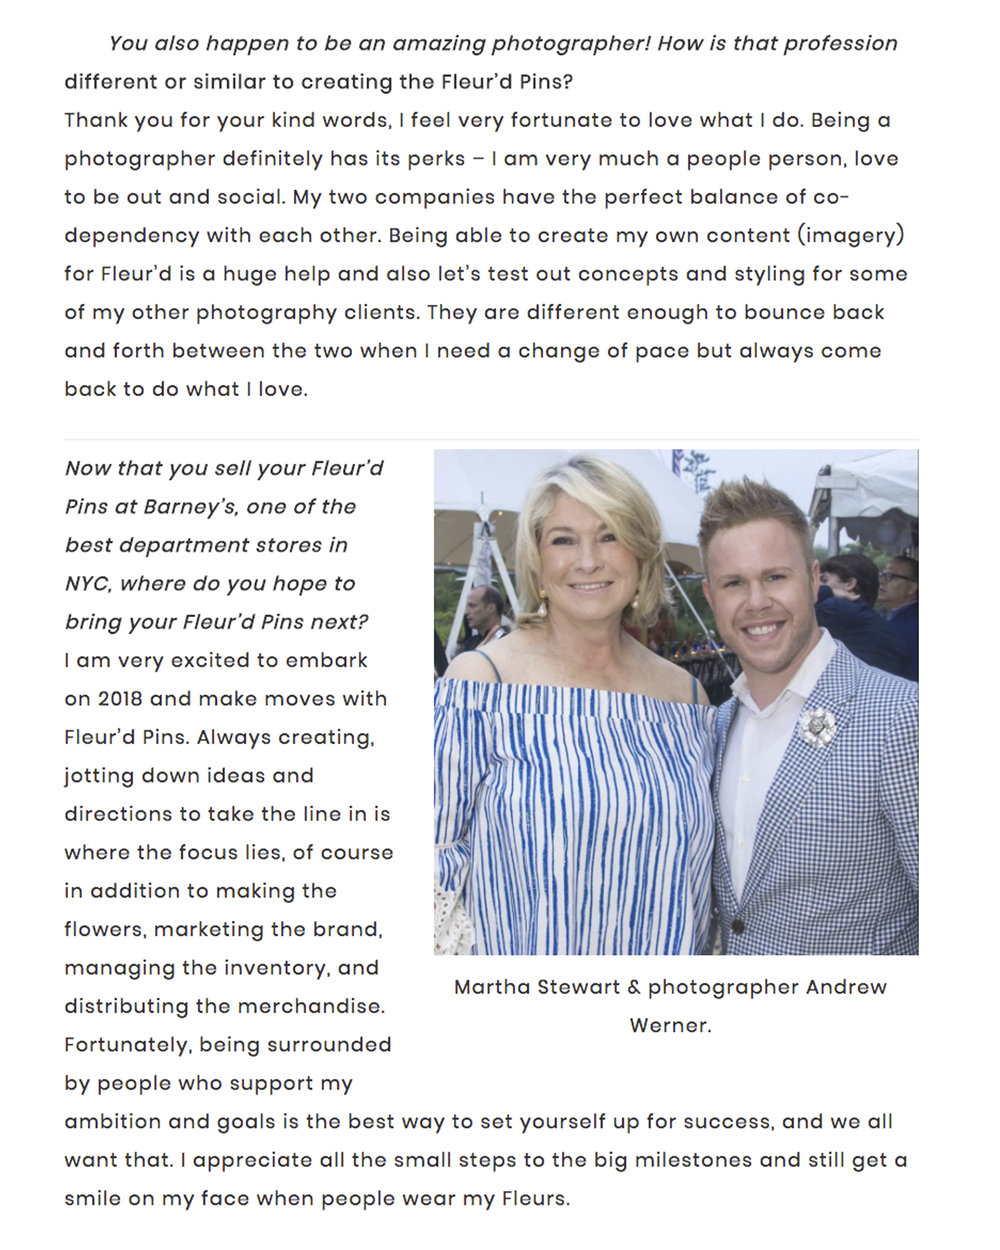 Luxury Chapters Interviews Photographer Andrew Werner on Fleur'd Pins - page 5.jpg